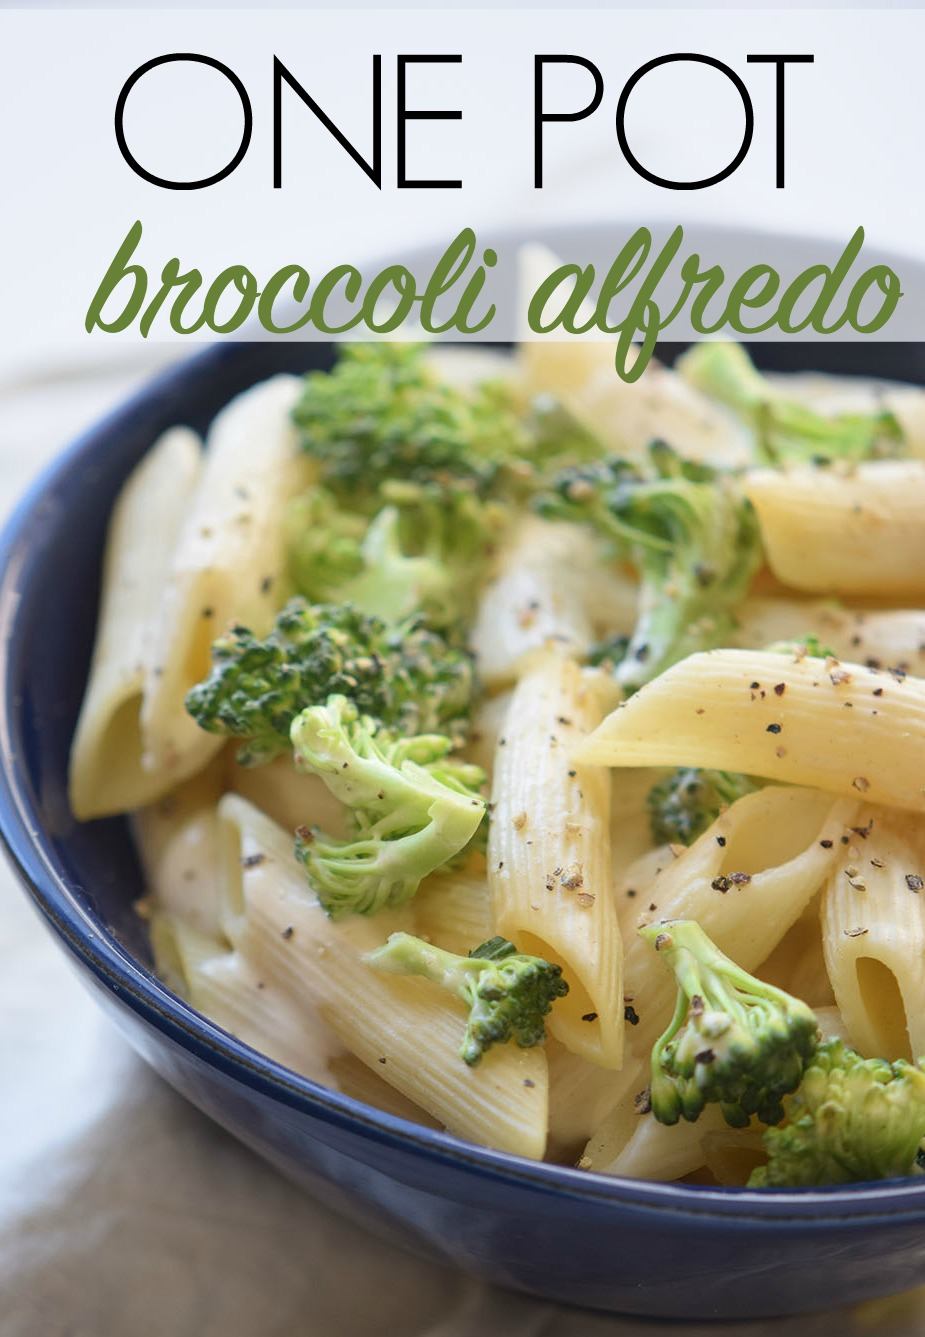 This One Pot Broccoli Alfredo Pasta is an easy, creamy stove top dish that's perfect for a busy weeknight. Serve it as a delicious side dish or a vegetarian main dish.